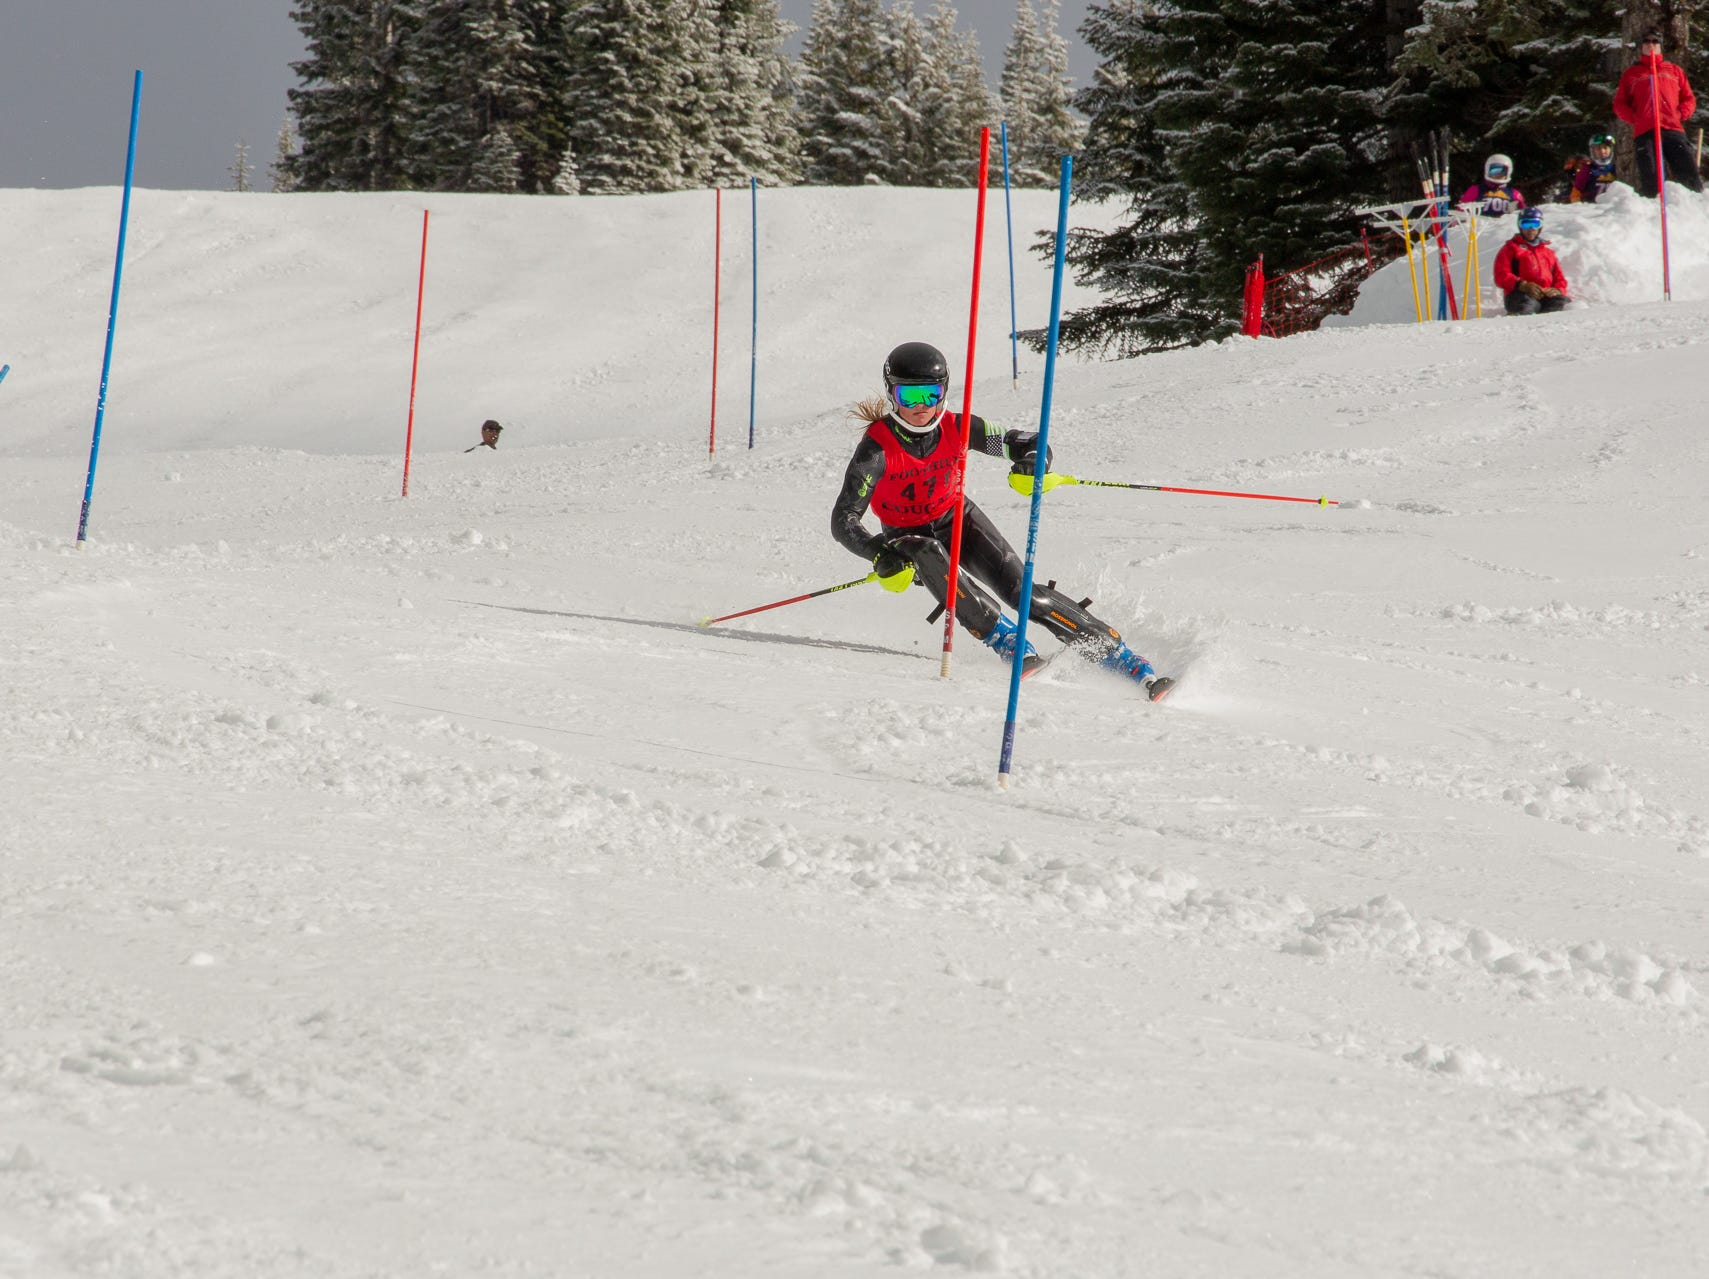 Cooper Laloli of Foothill competes in the second high school ski meet of 2019 on Monday, Jan. 21 at Mt. Shasta Ski Park.